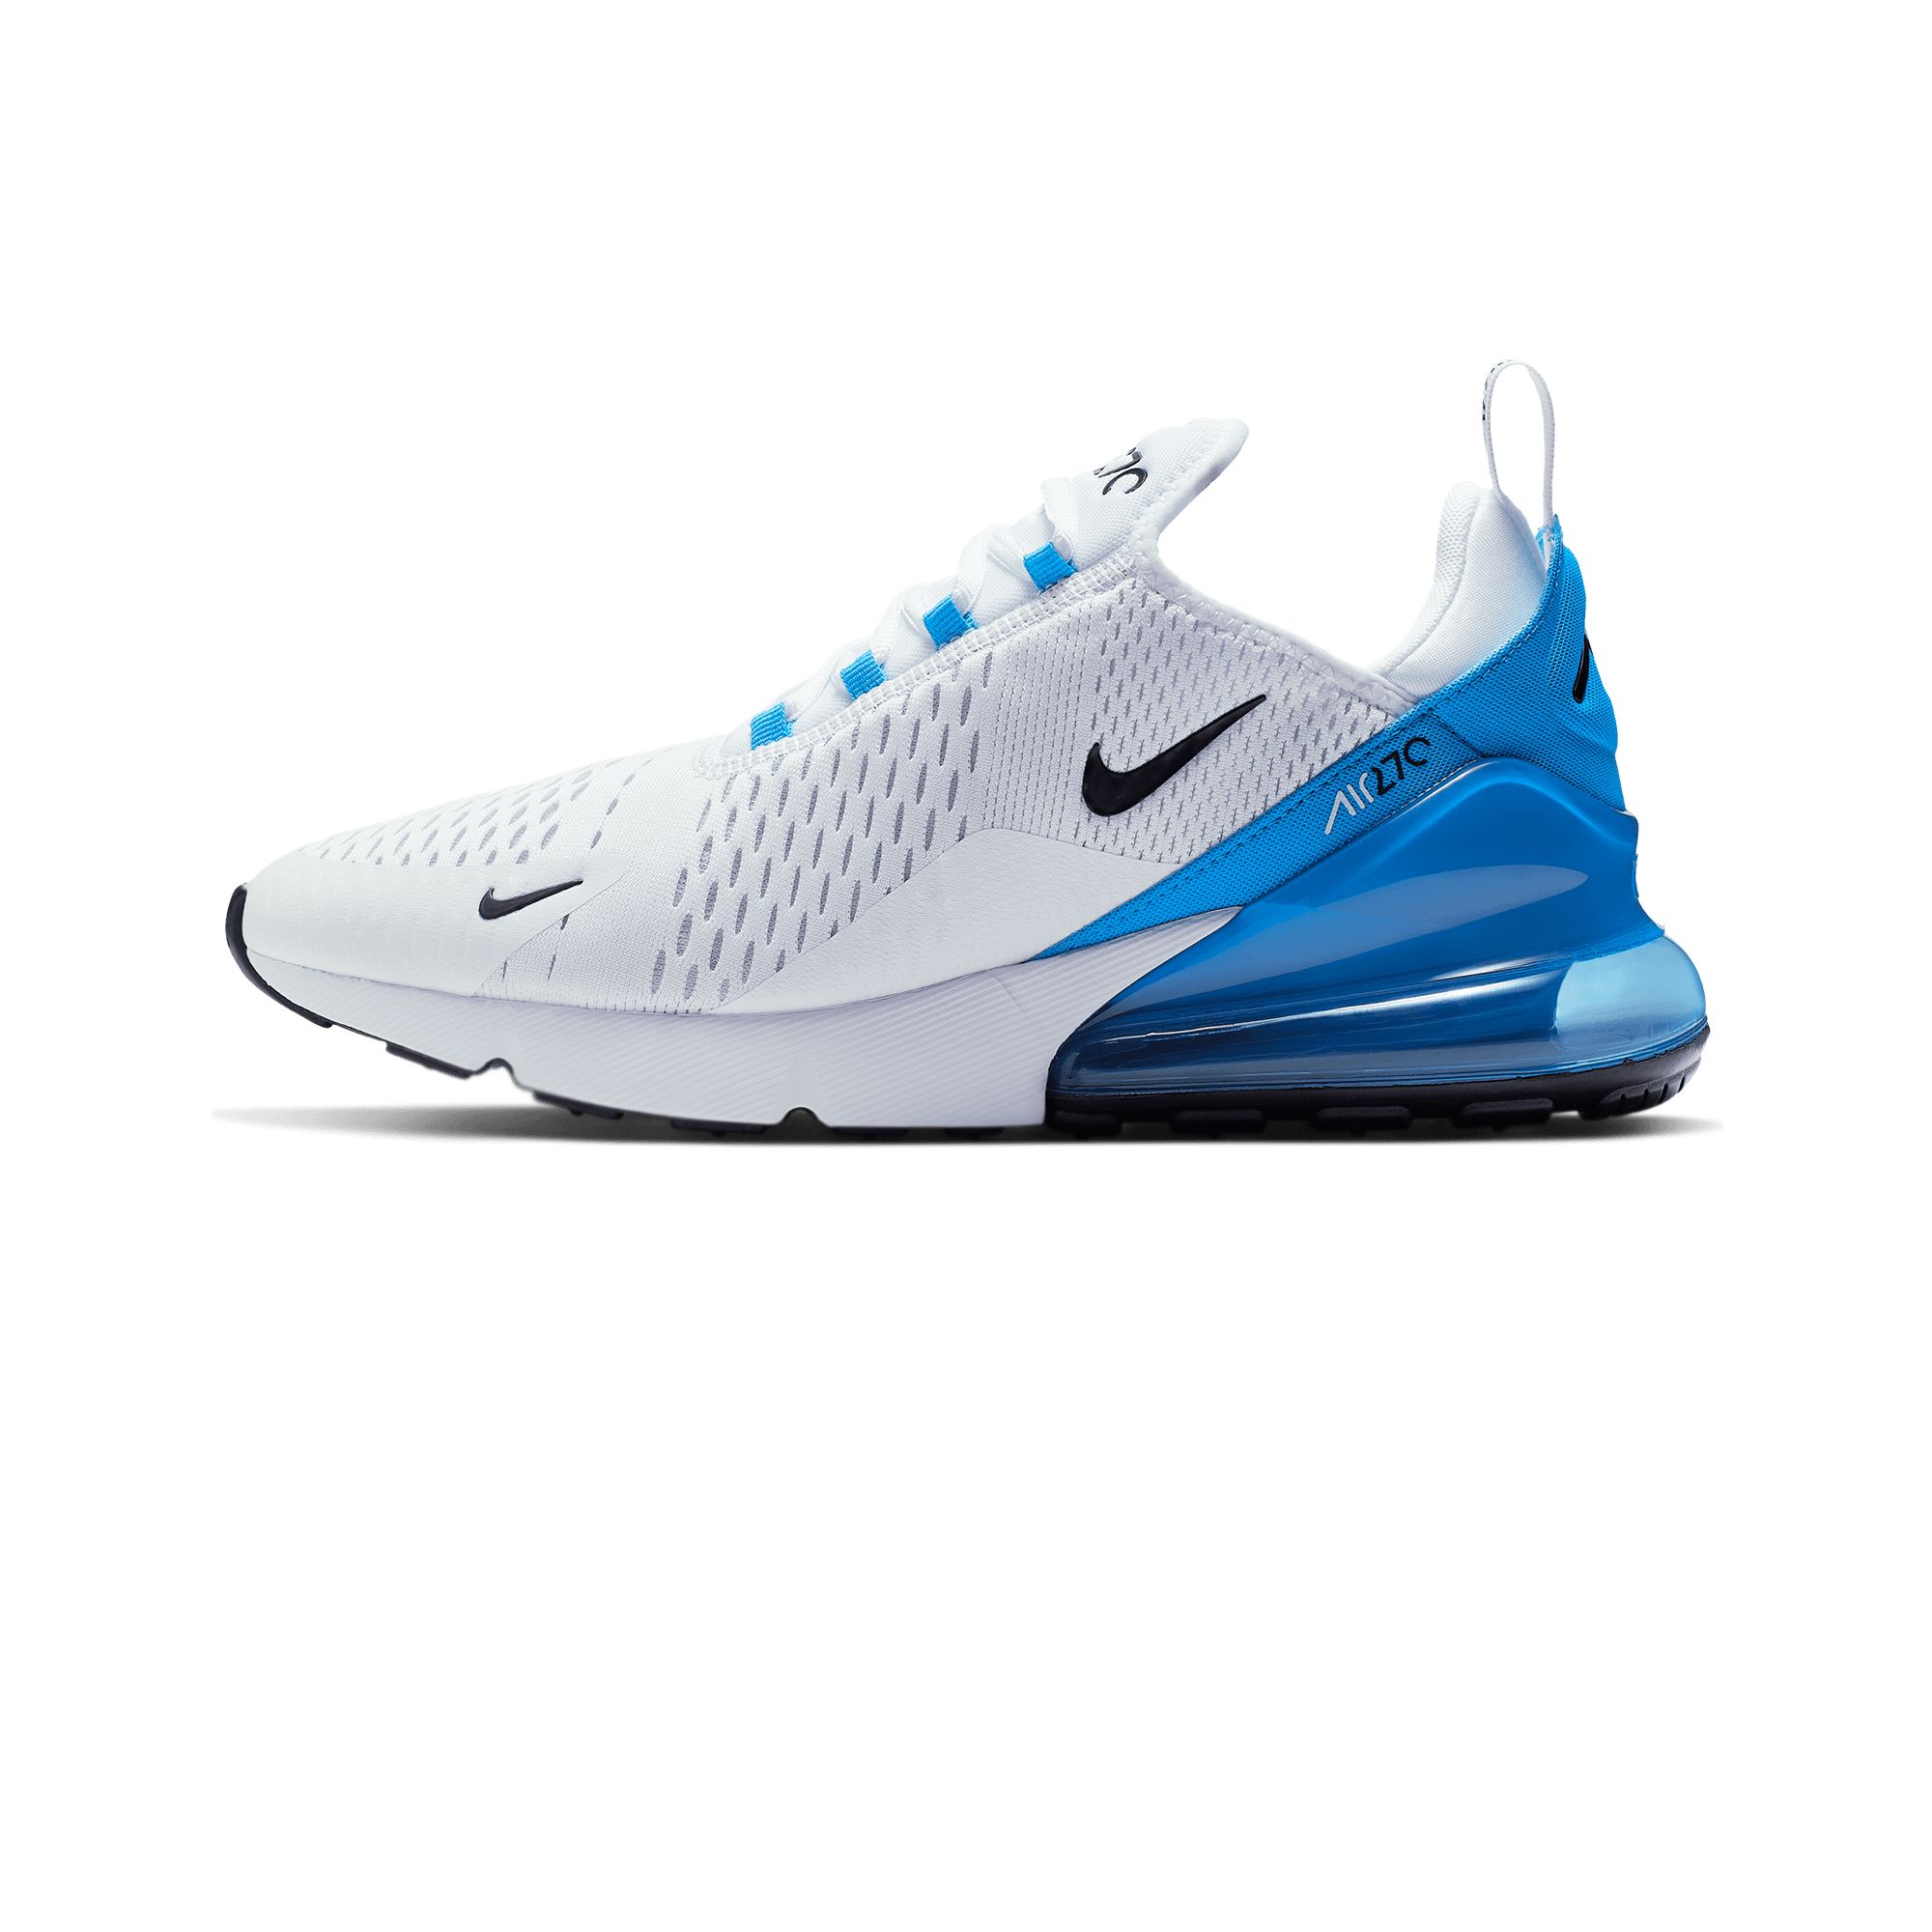 pretty nice 3c371 ca222 Nike Air max 270 white / black / blue / platinum - Men | Holypopstore.com